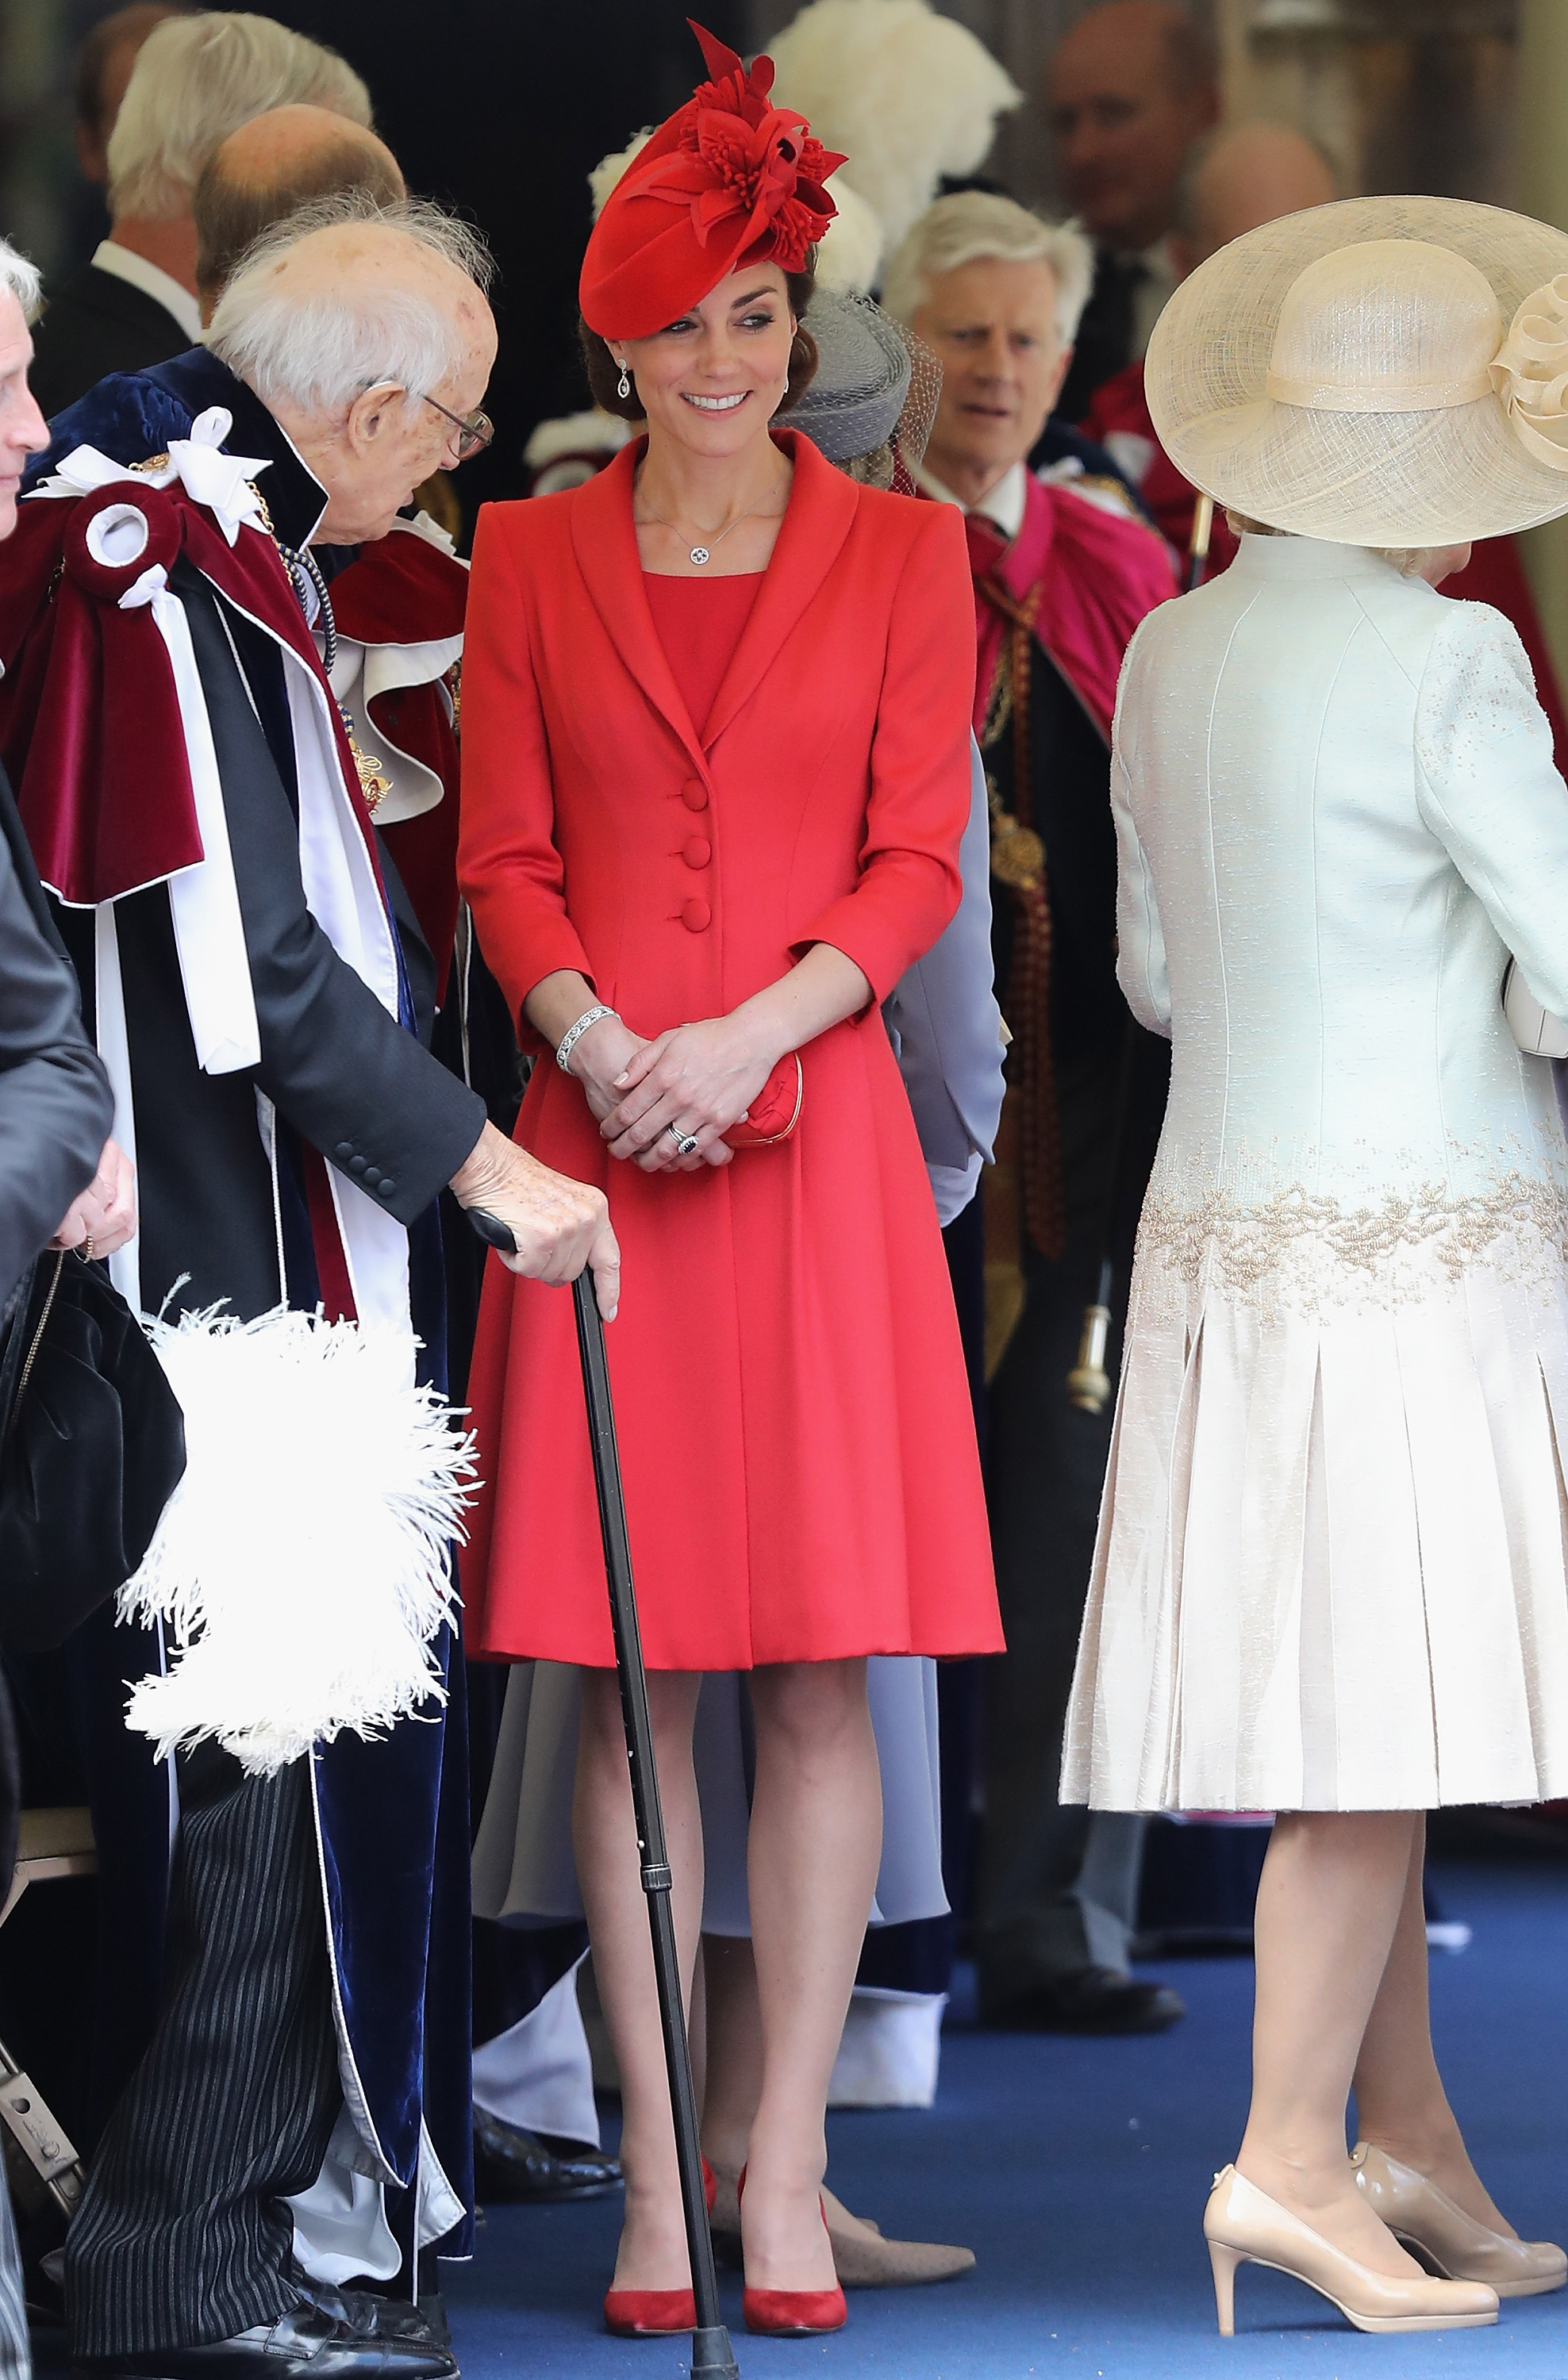 Catherine, Duchess of Cambridge, chats with guests after the Order of the Garter Service at Windsor Castle  in England on June 13, 2016.